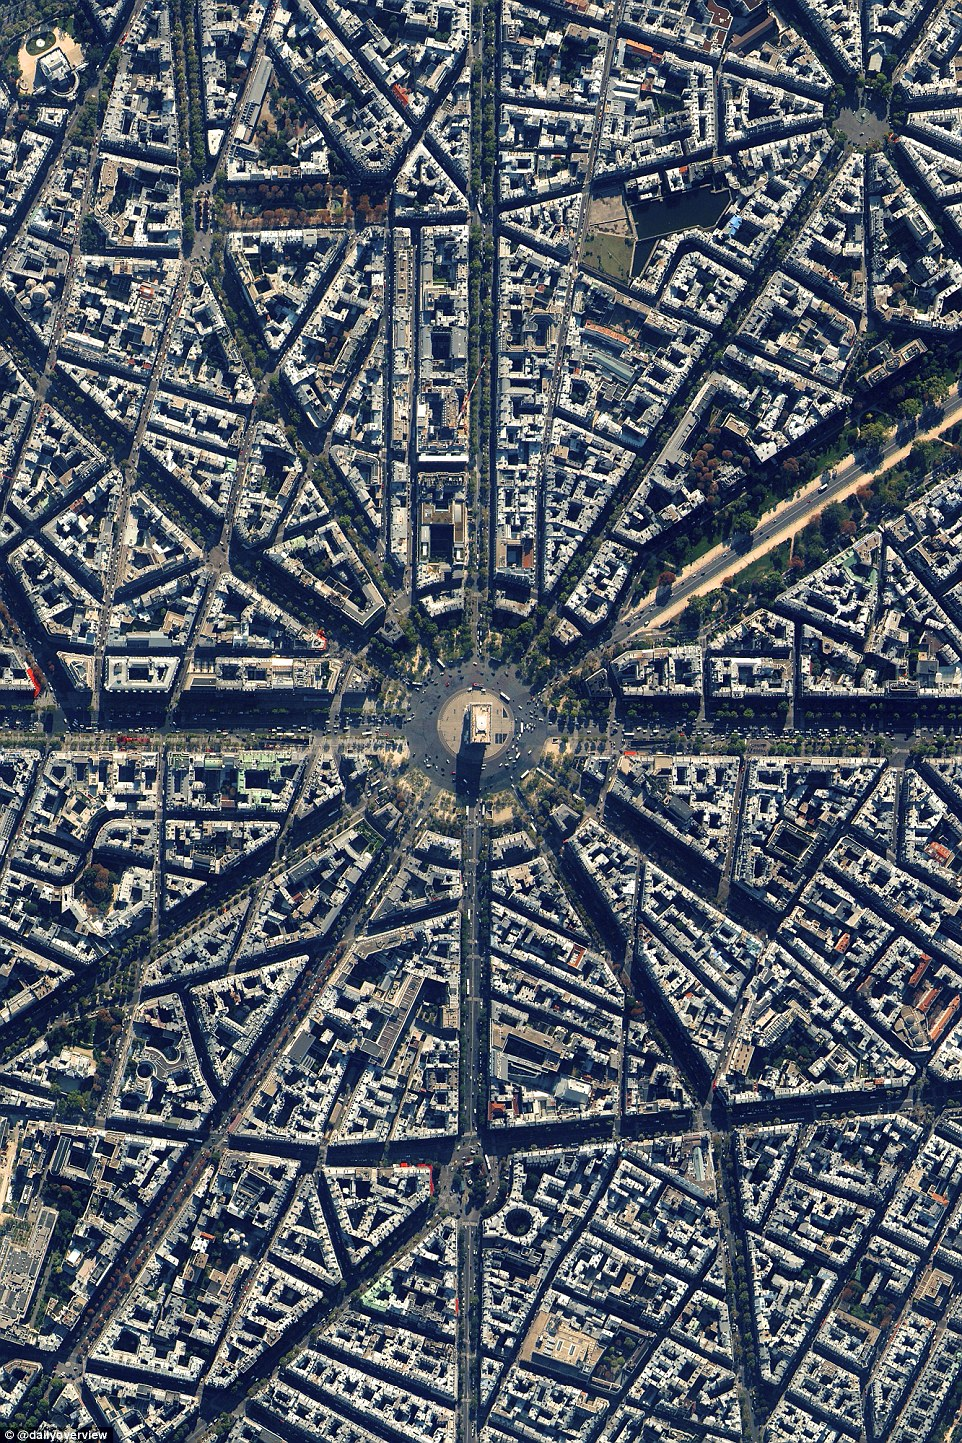 1. Arc de Triomphe, Paris, France